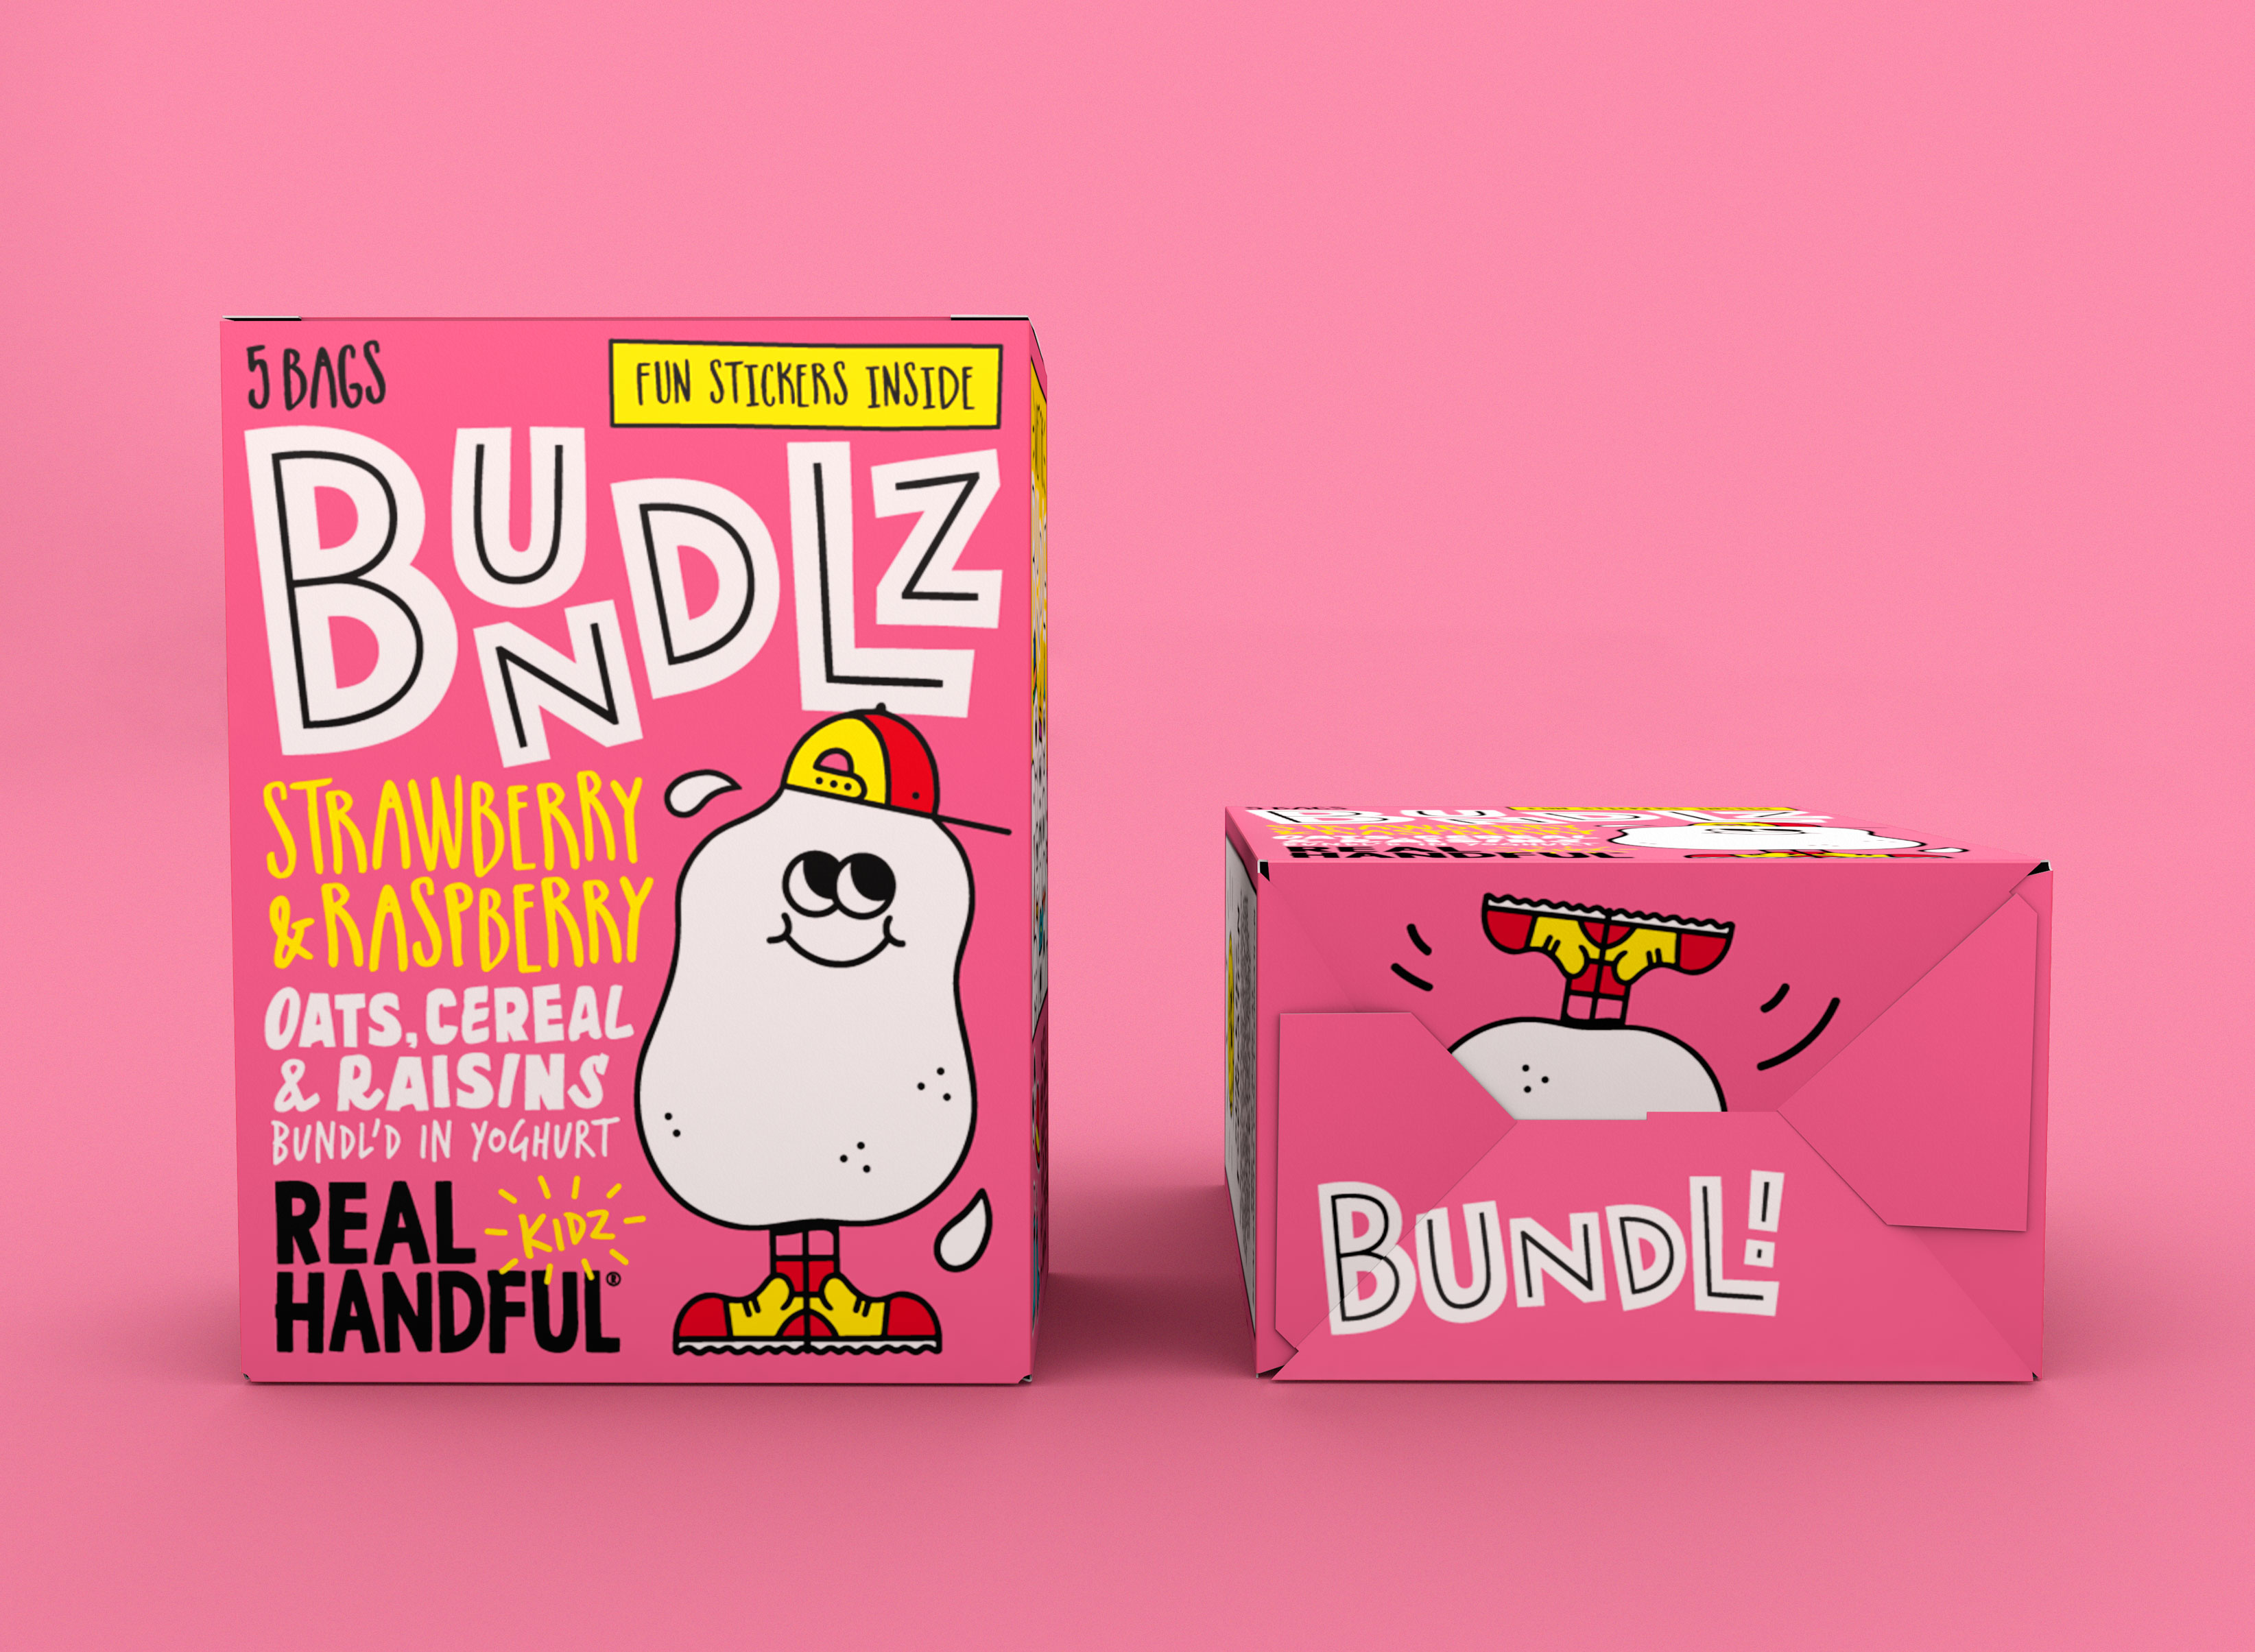 Bundlz Brand Creation Created by Middday